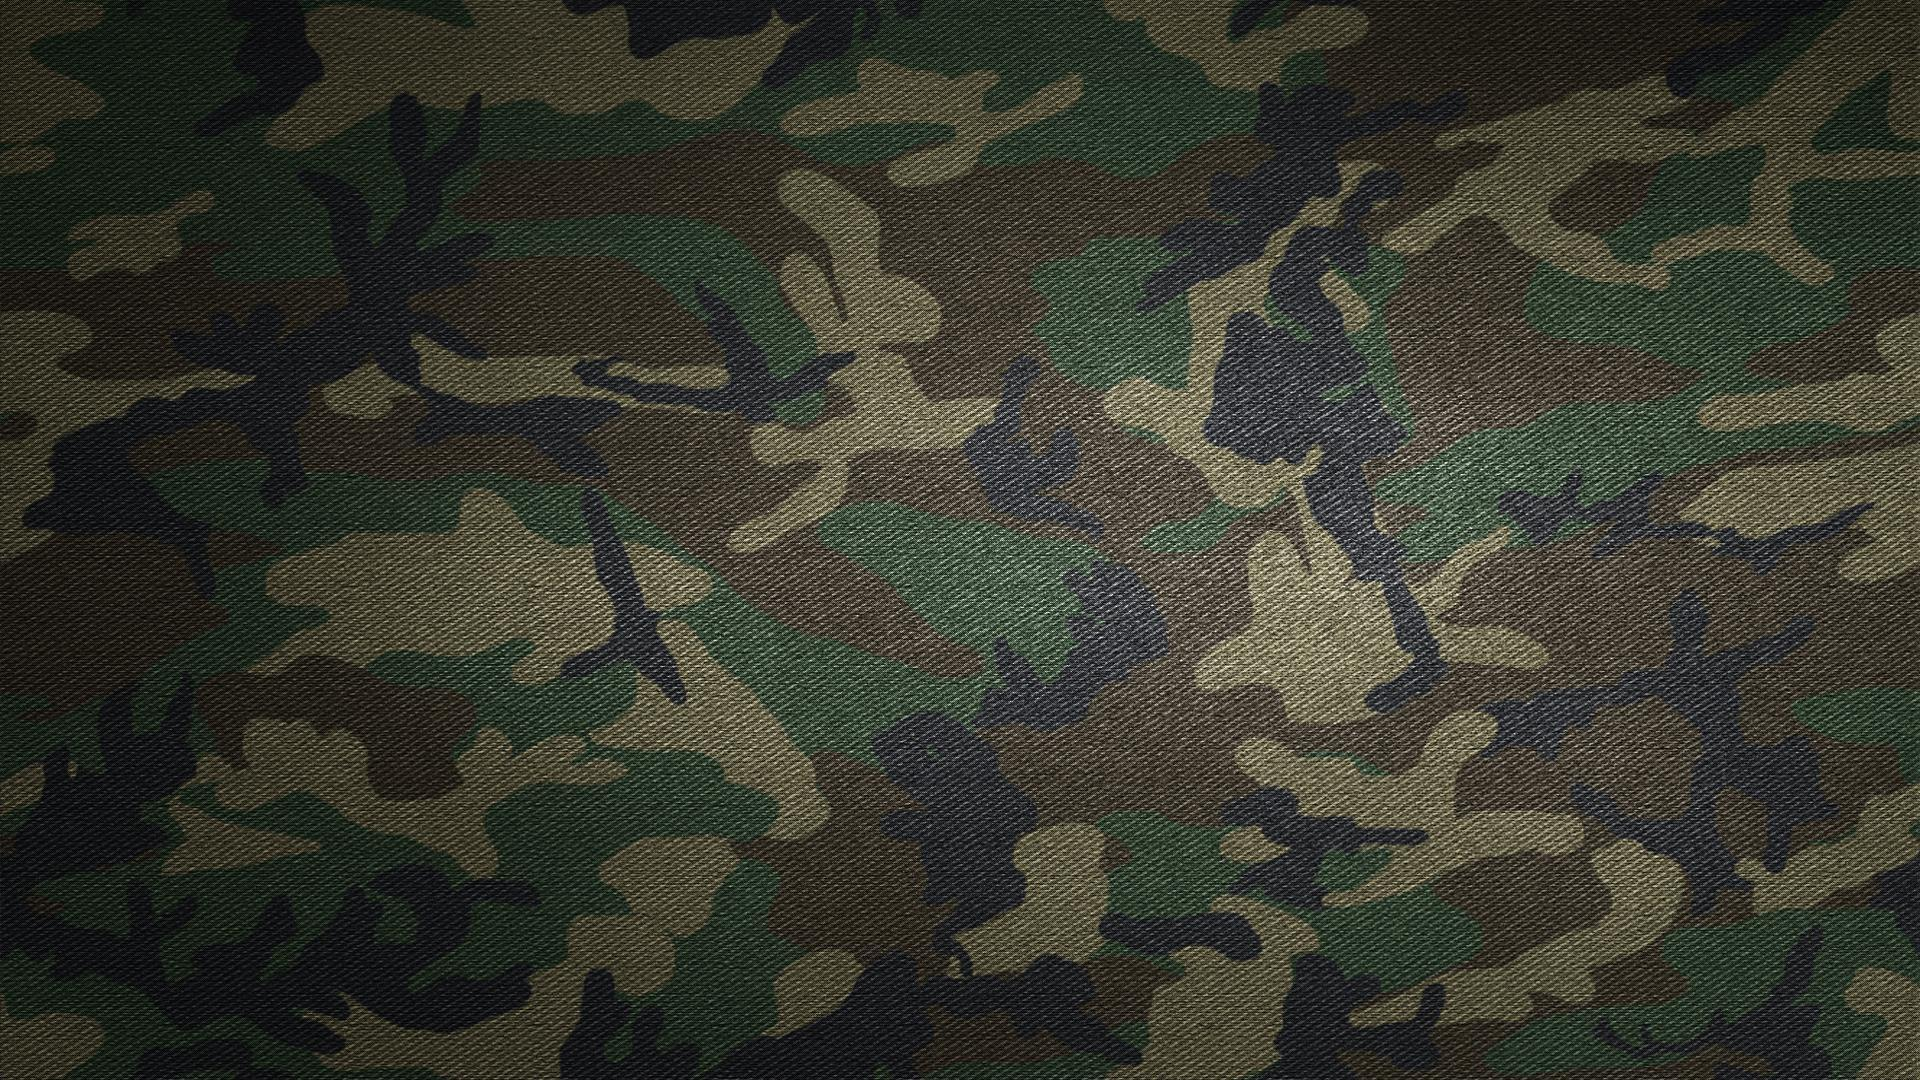 camo desktop wallpaper full screen - photo #1